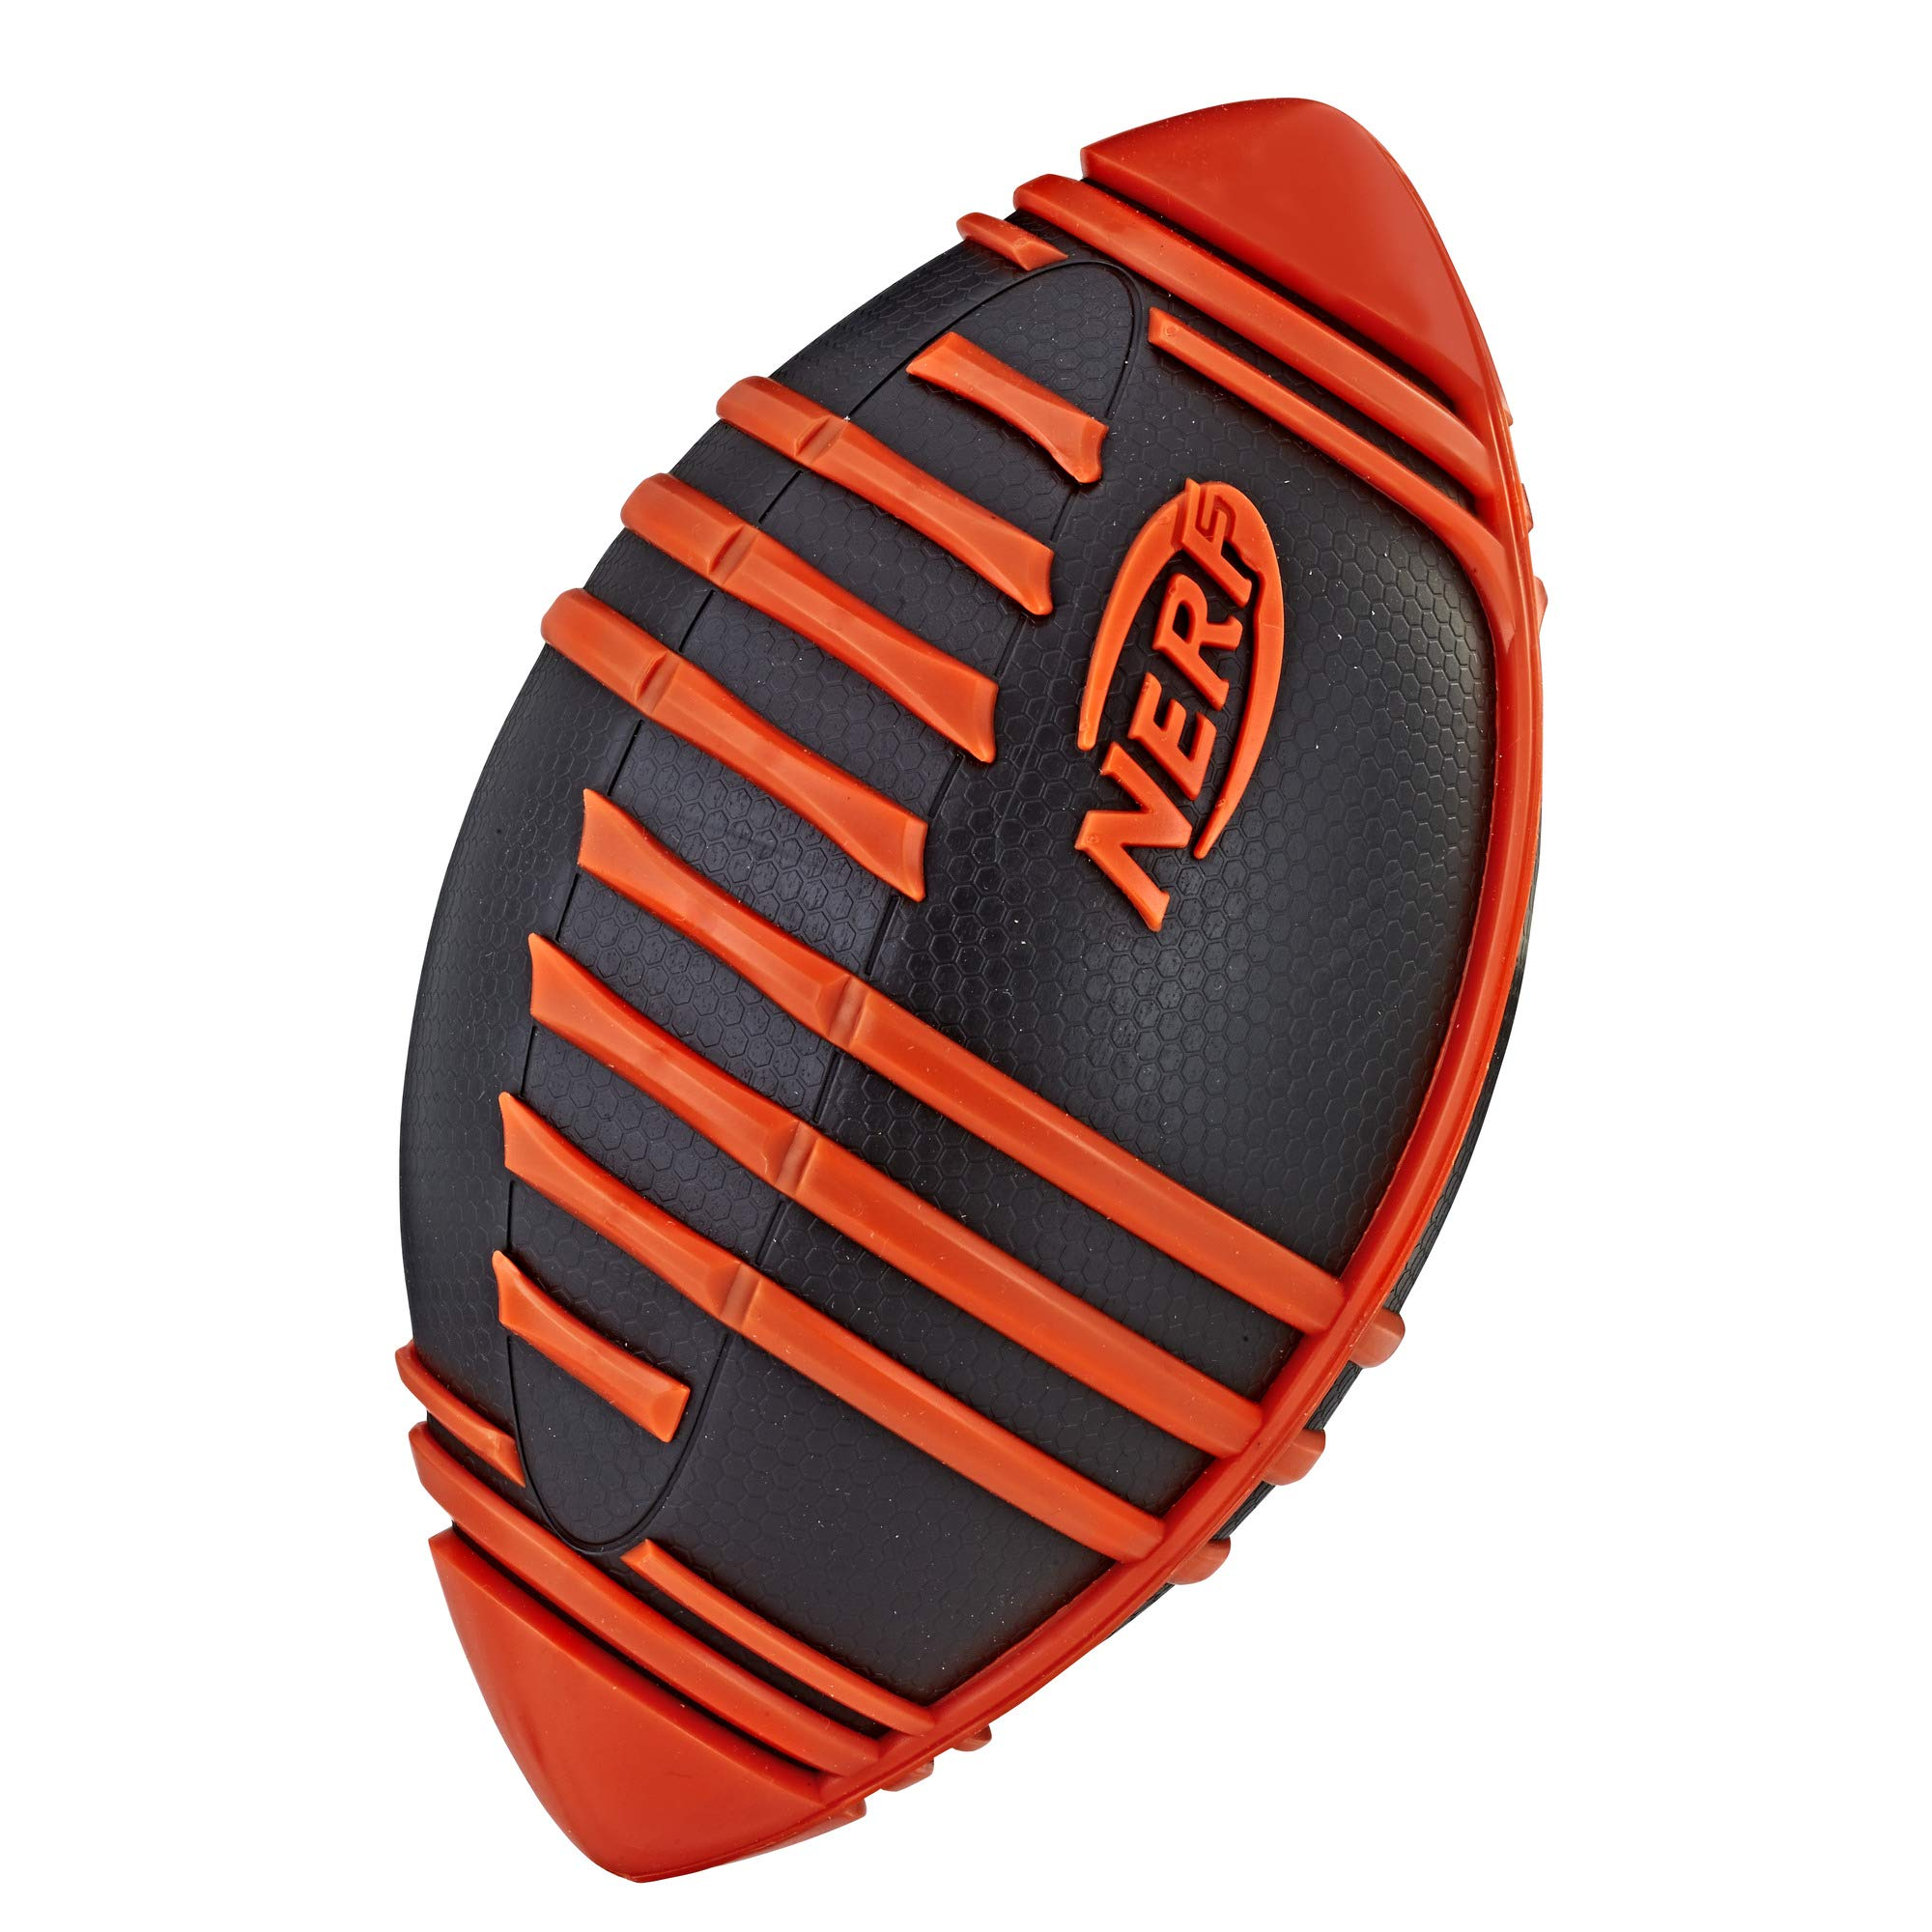 Nerf Sports Weather Blitz Football, Red/Black by NERF